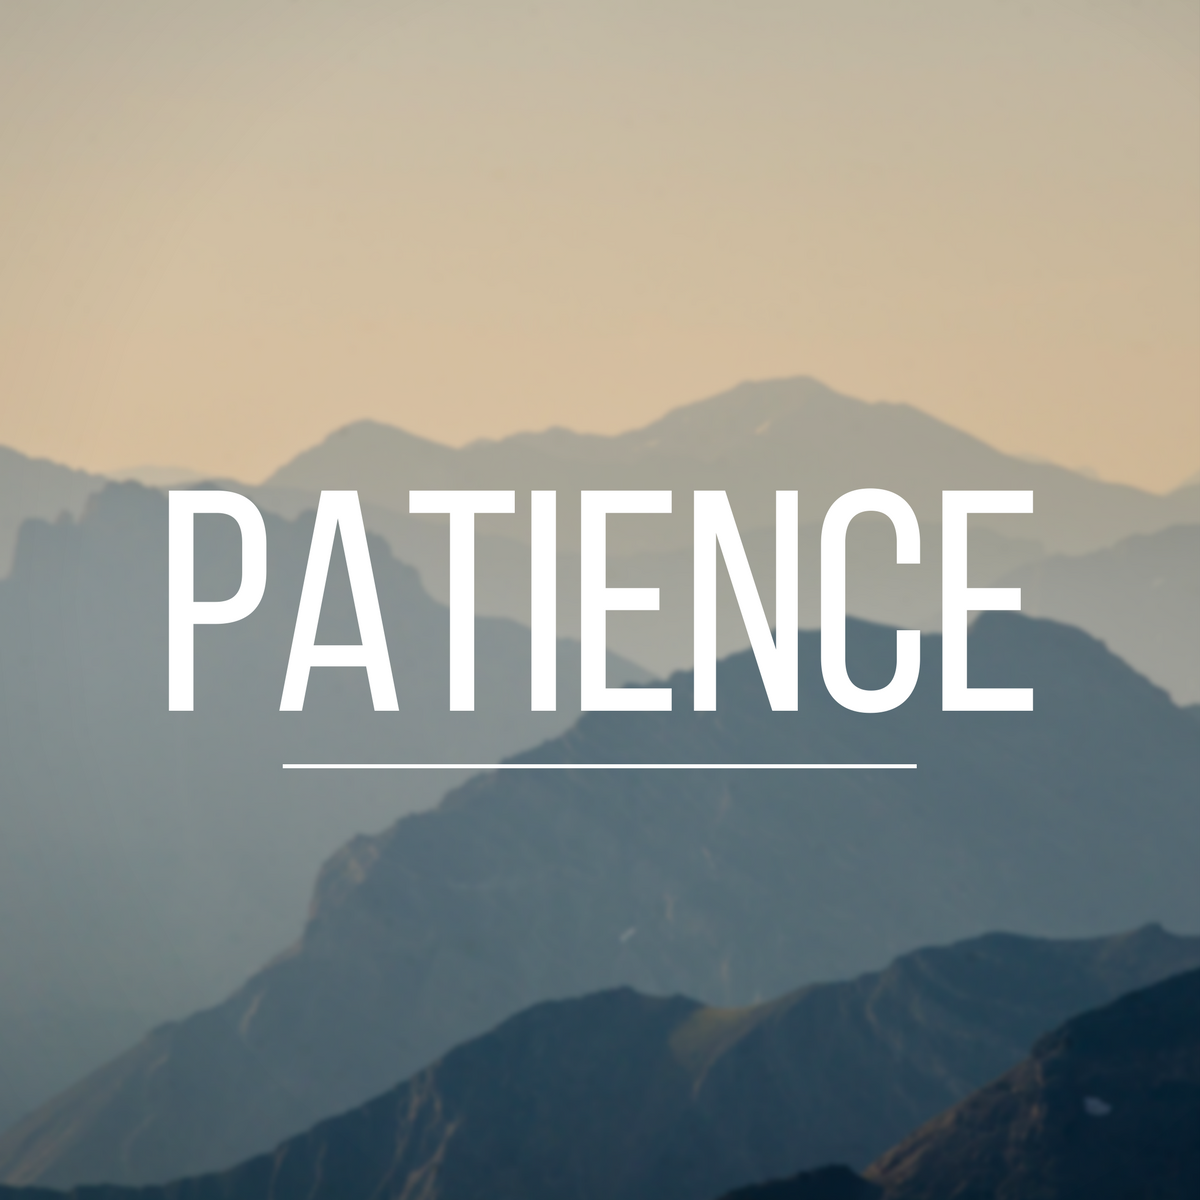 here is patience